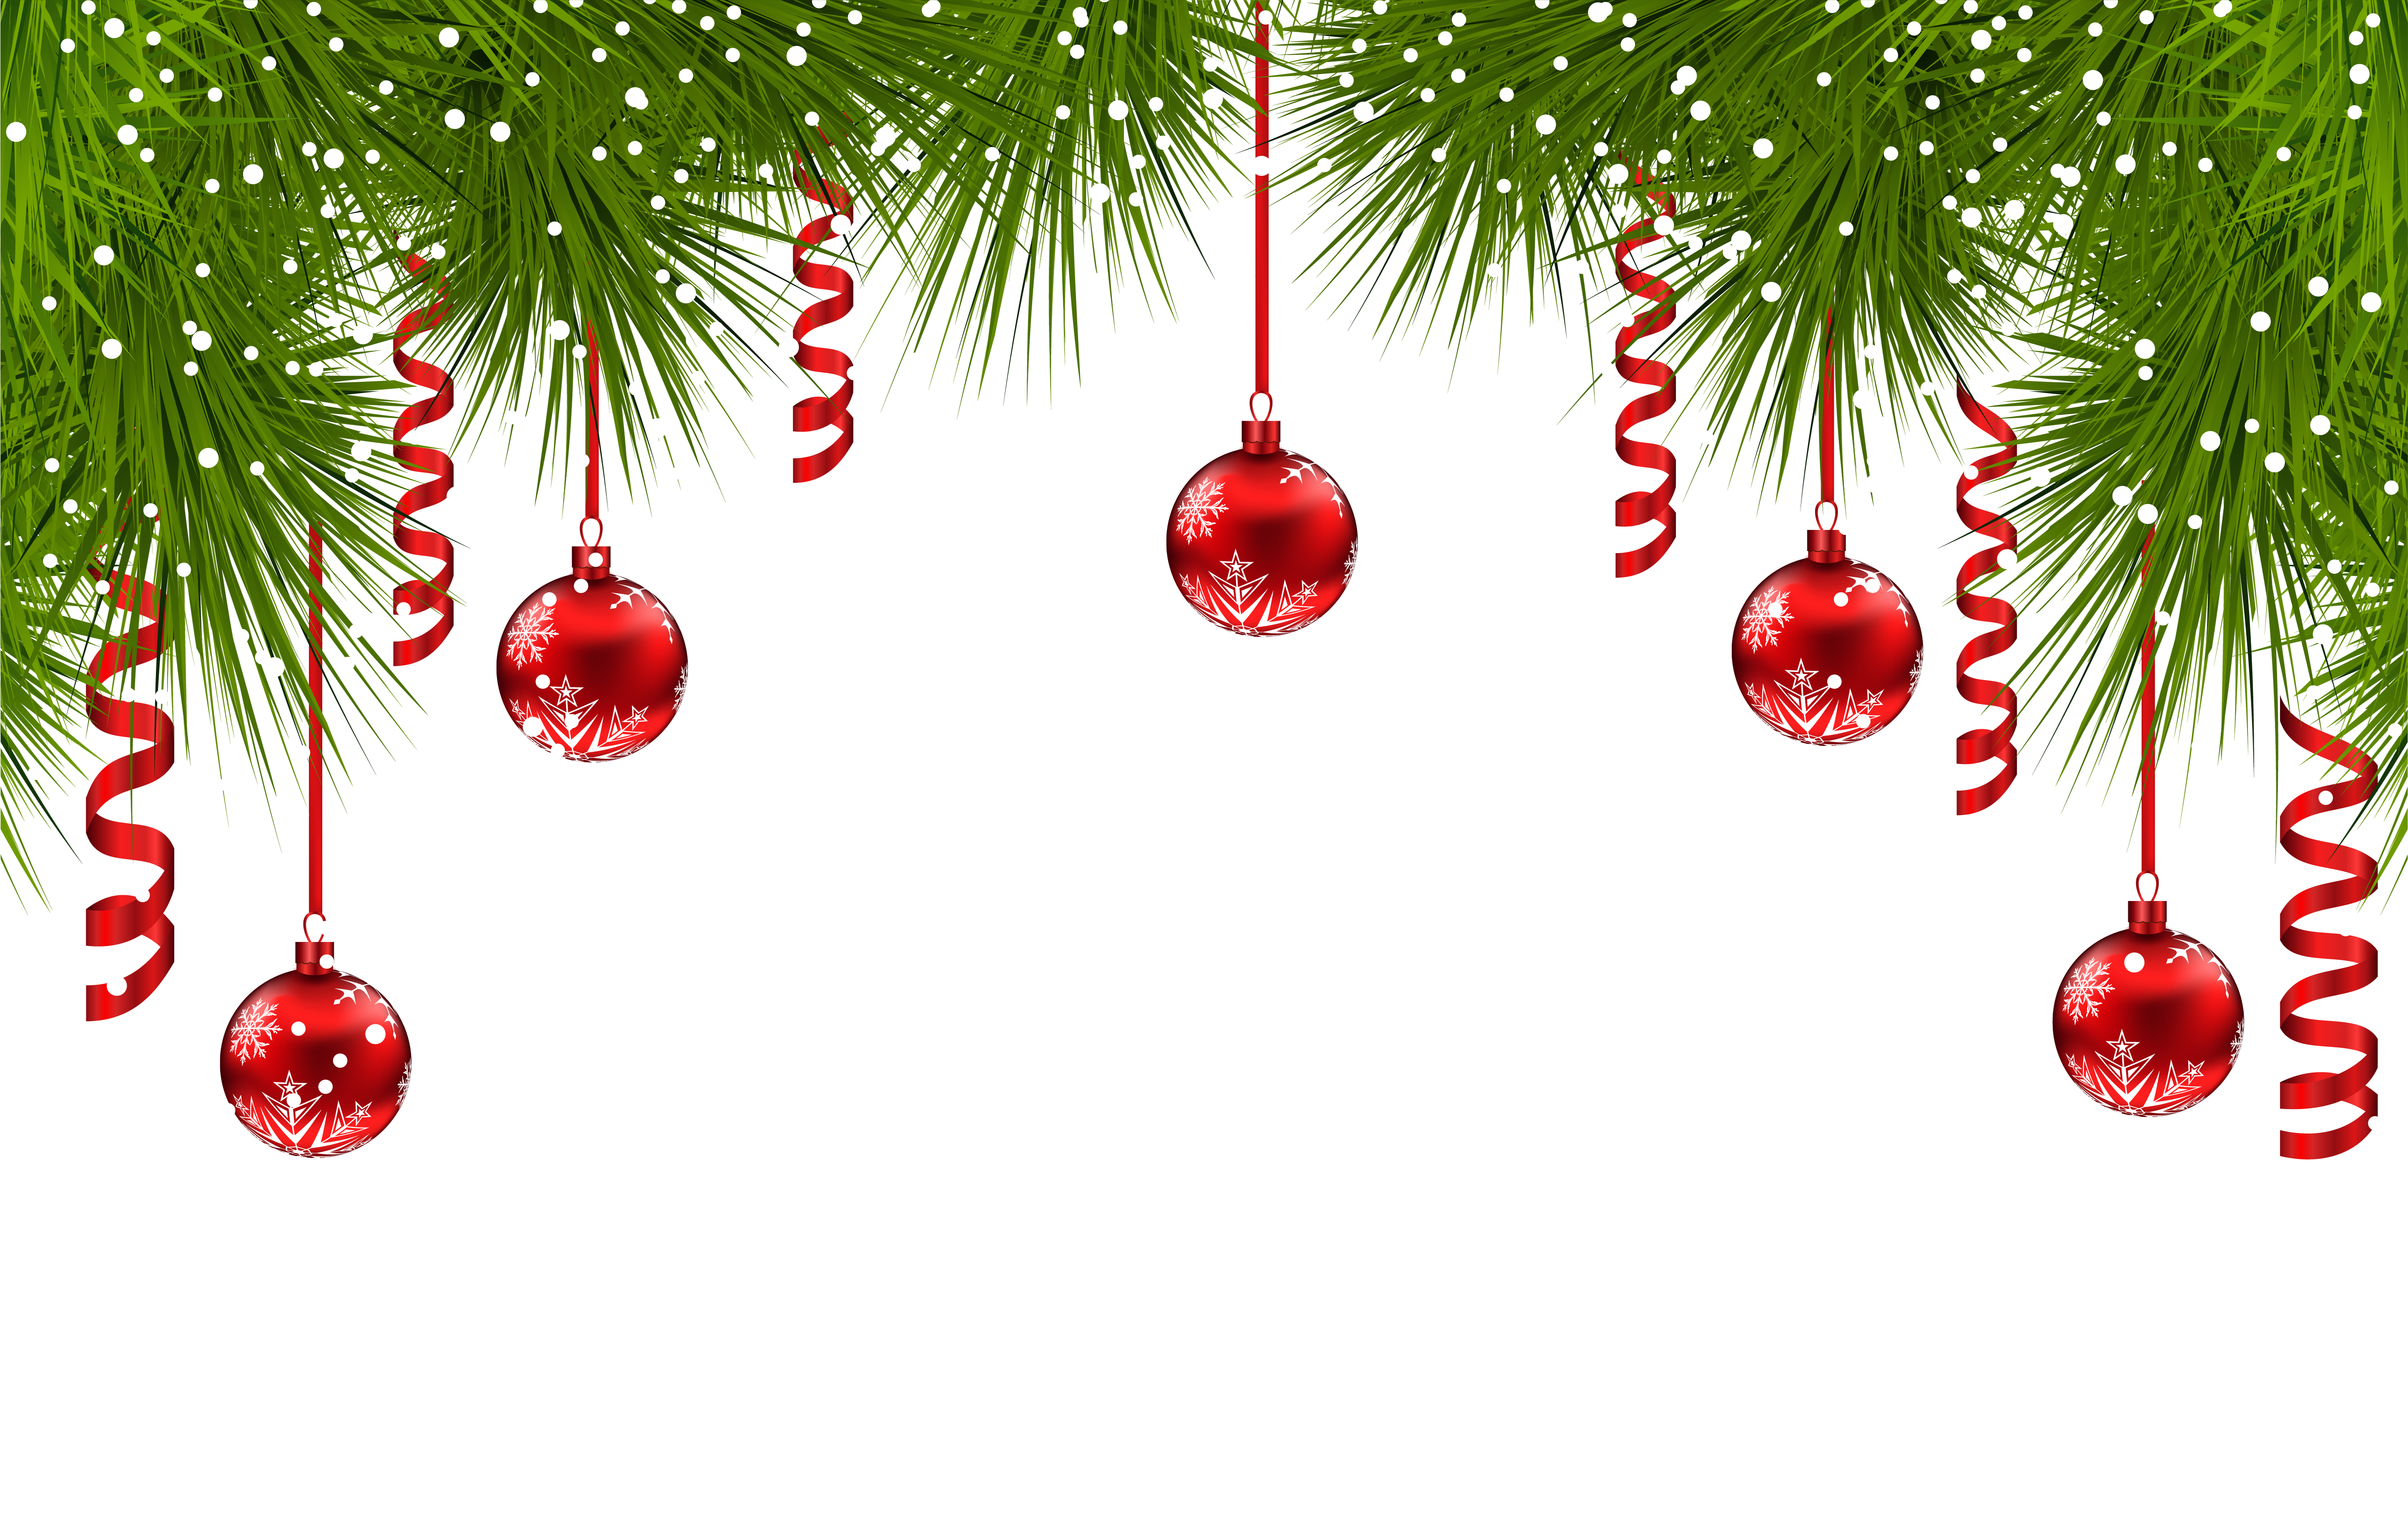 Christmas png images. Hanging xmas decorations ceiling